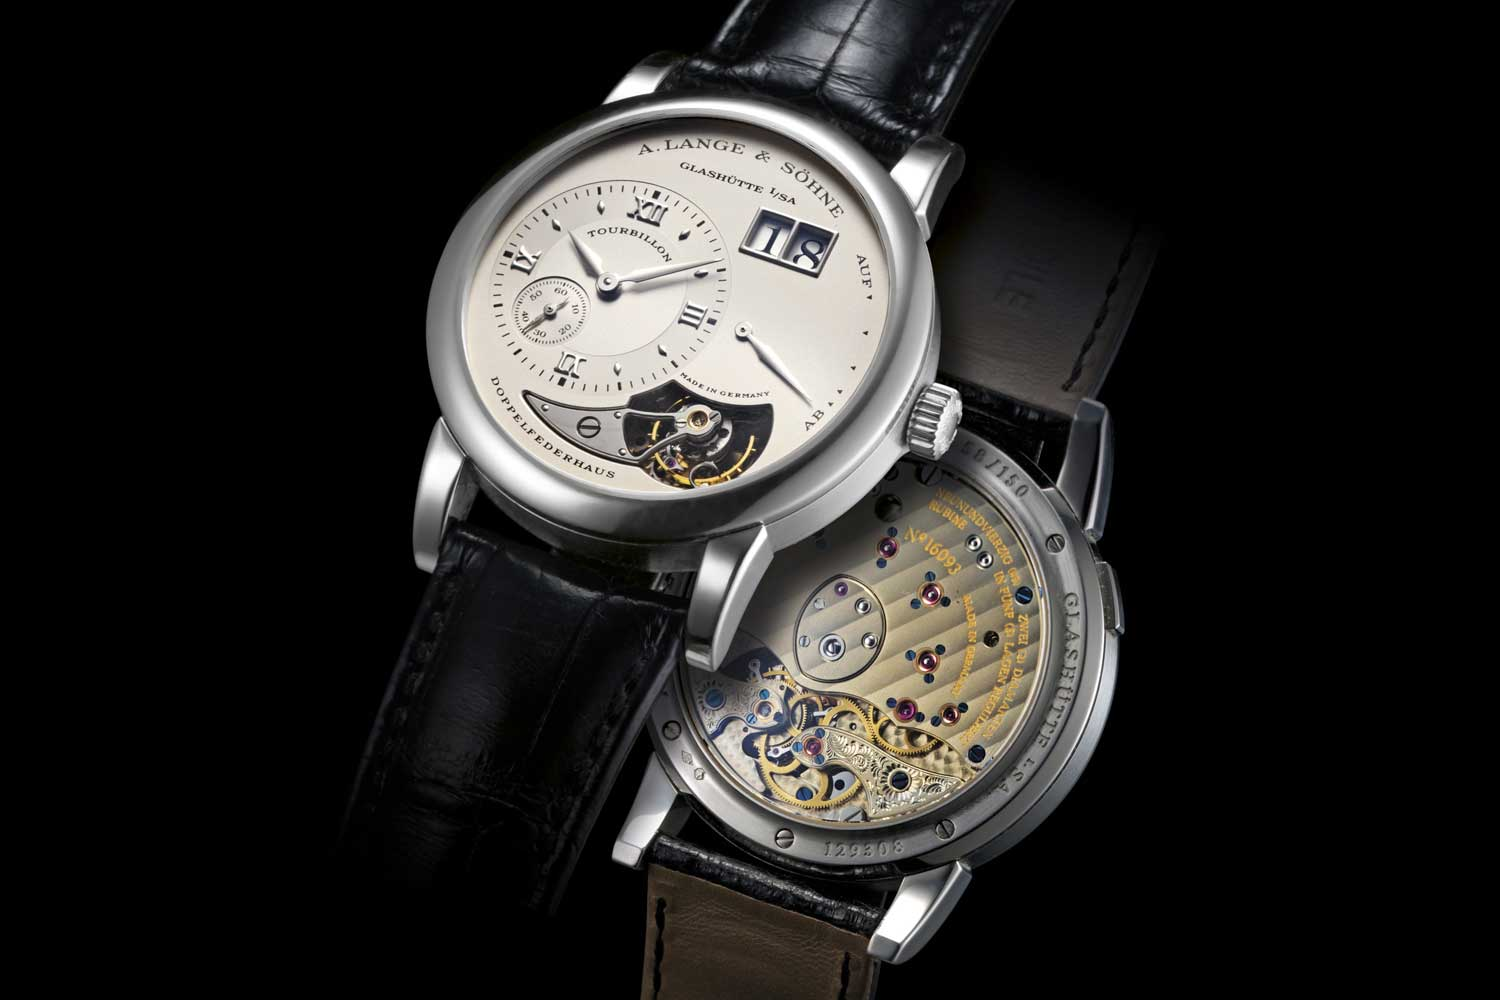 Lange 1 Tourbillon, reference 704.025 launched in 2000 (Image: christies.com)